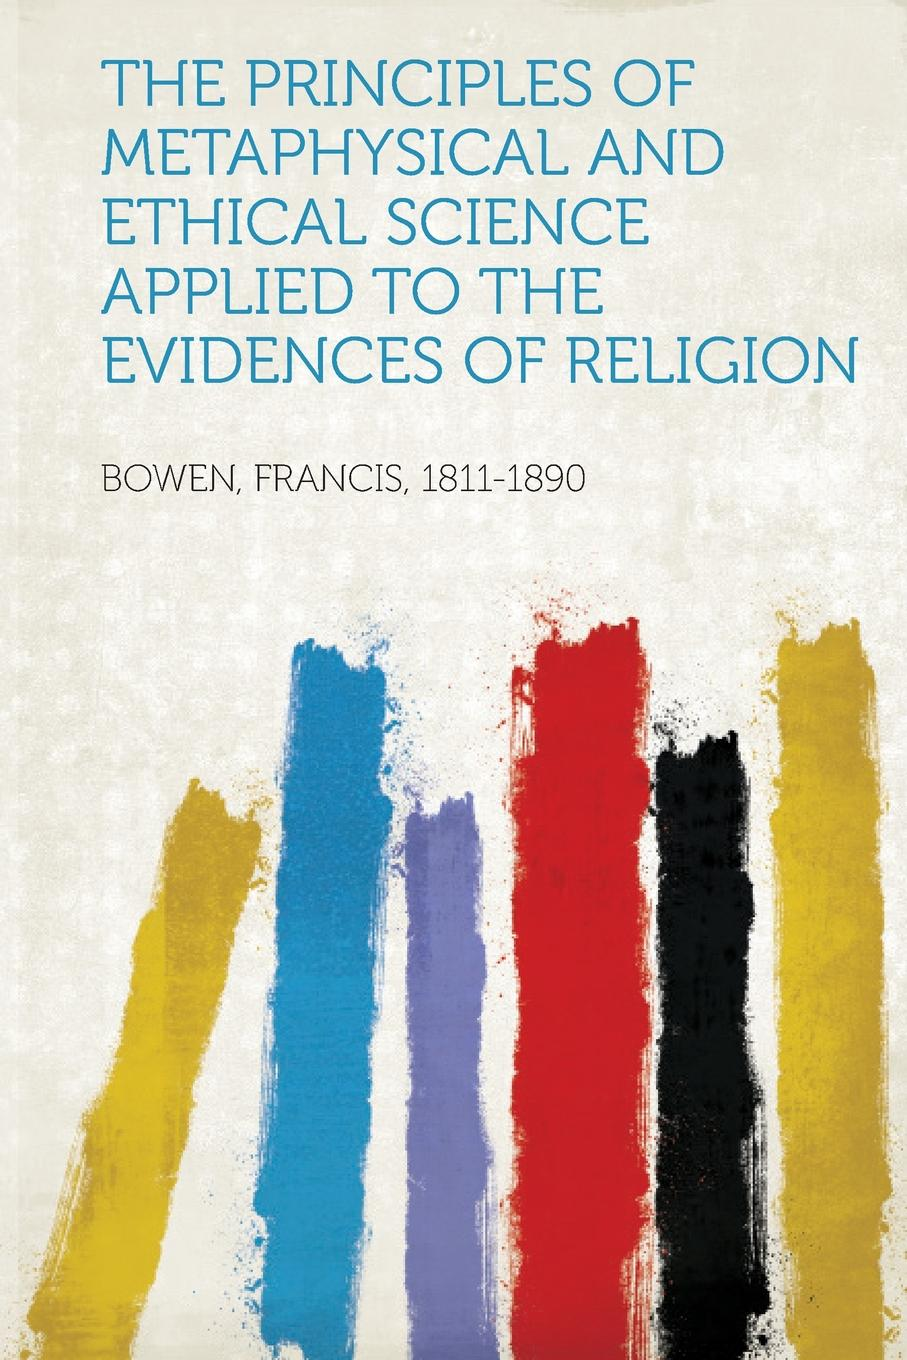 The Principles of Metaphysical and Ethical Science Applied to the Evidences of Religion